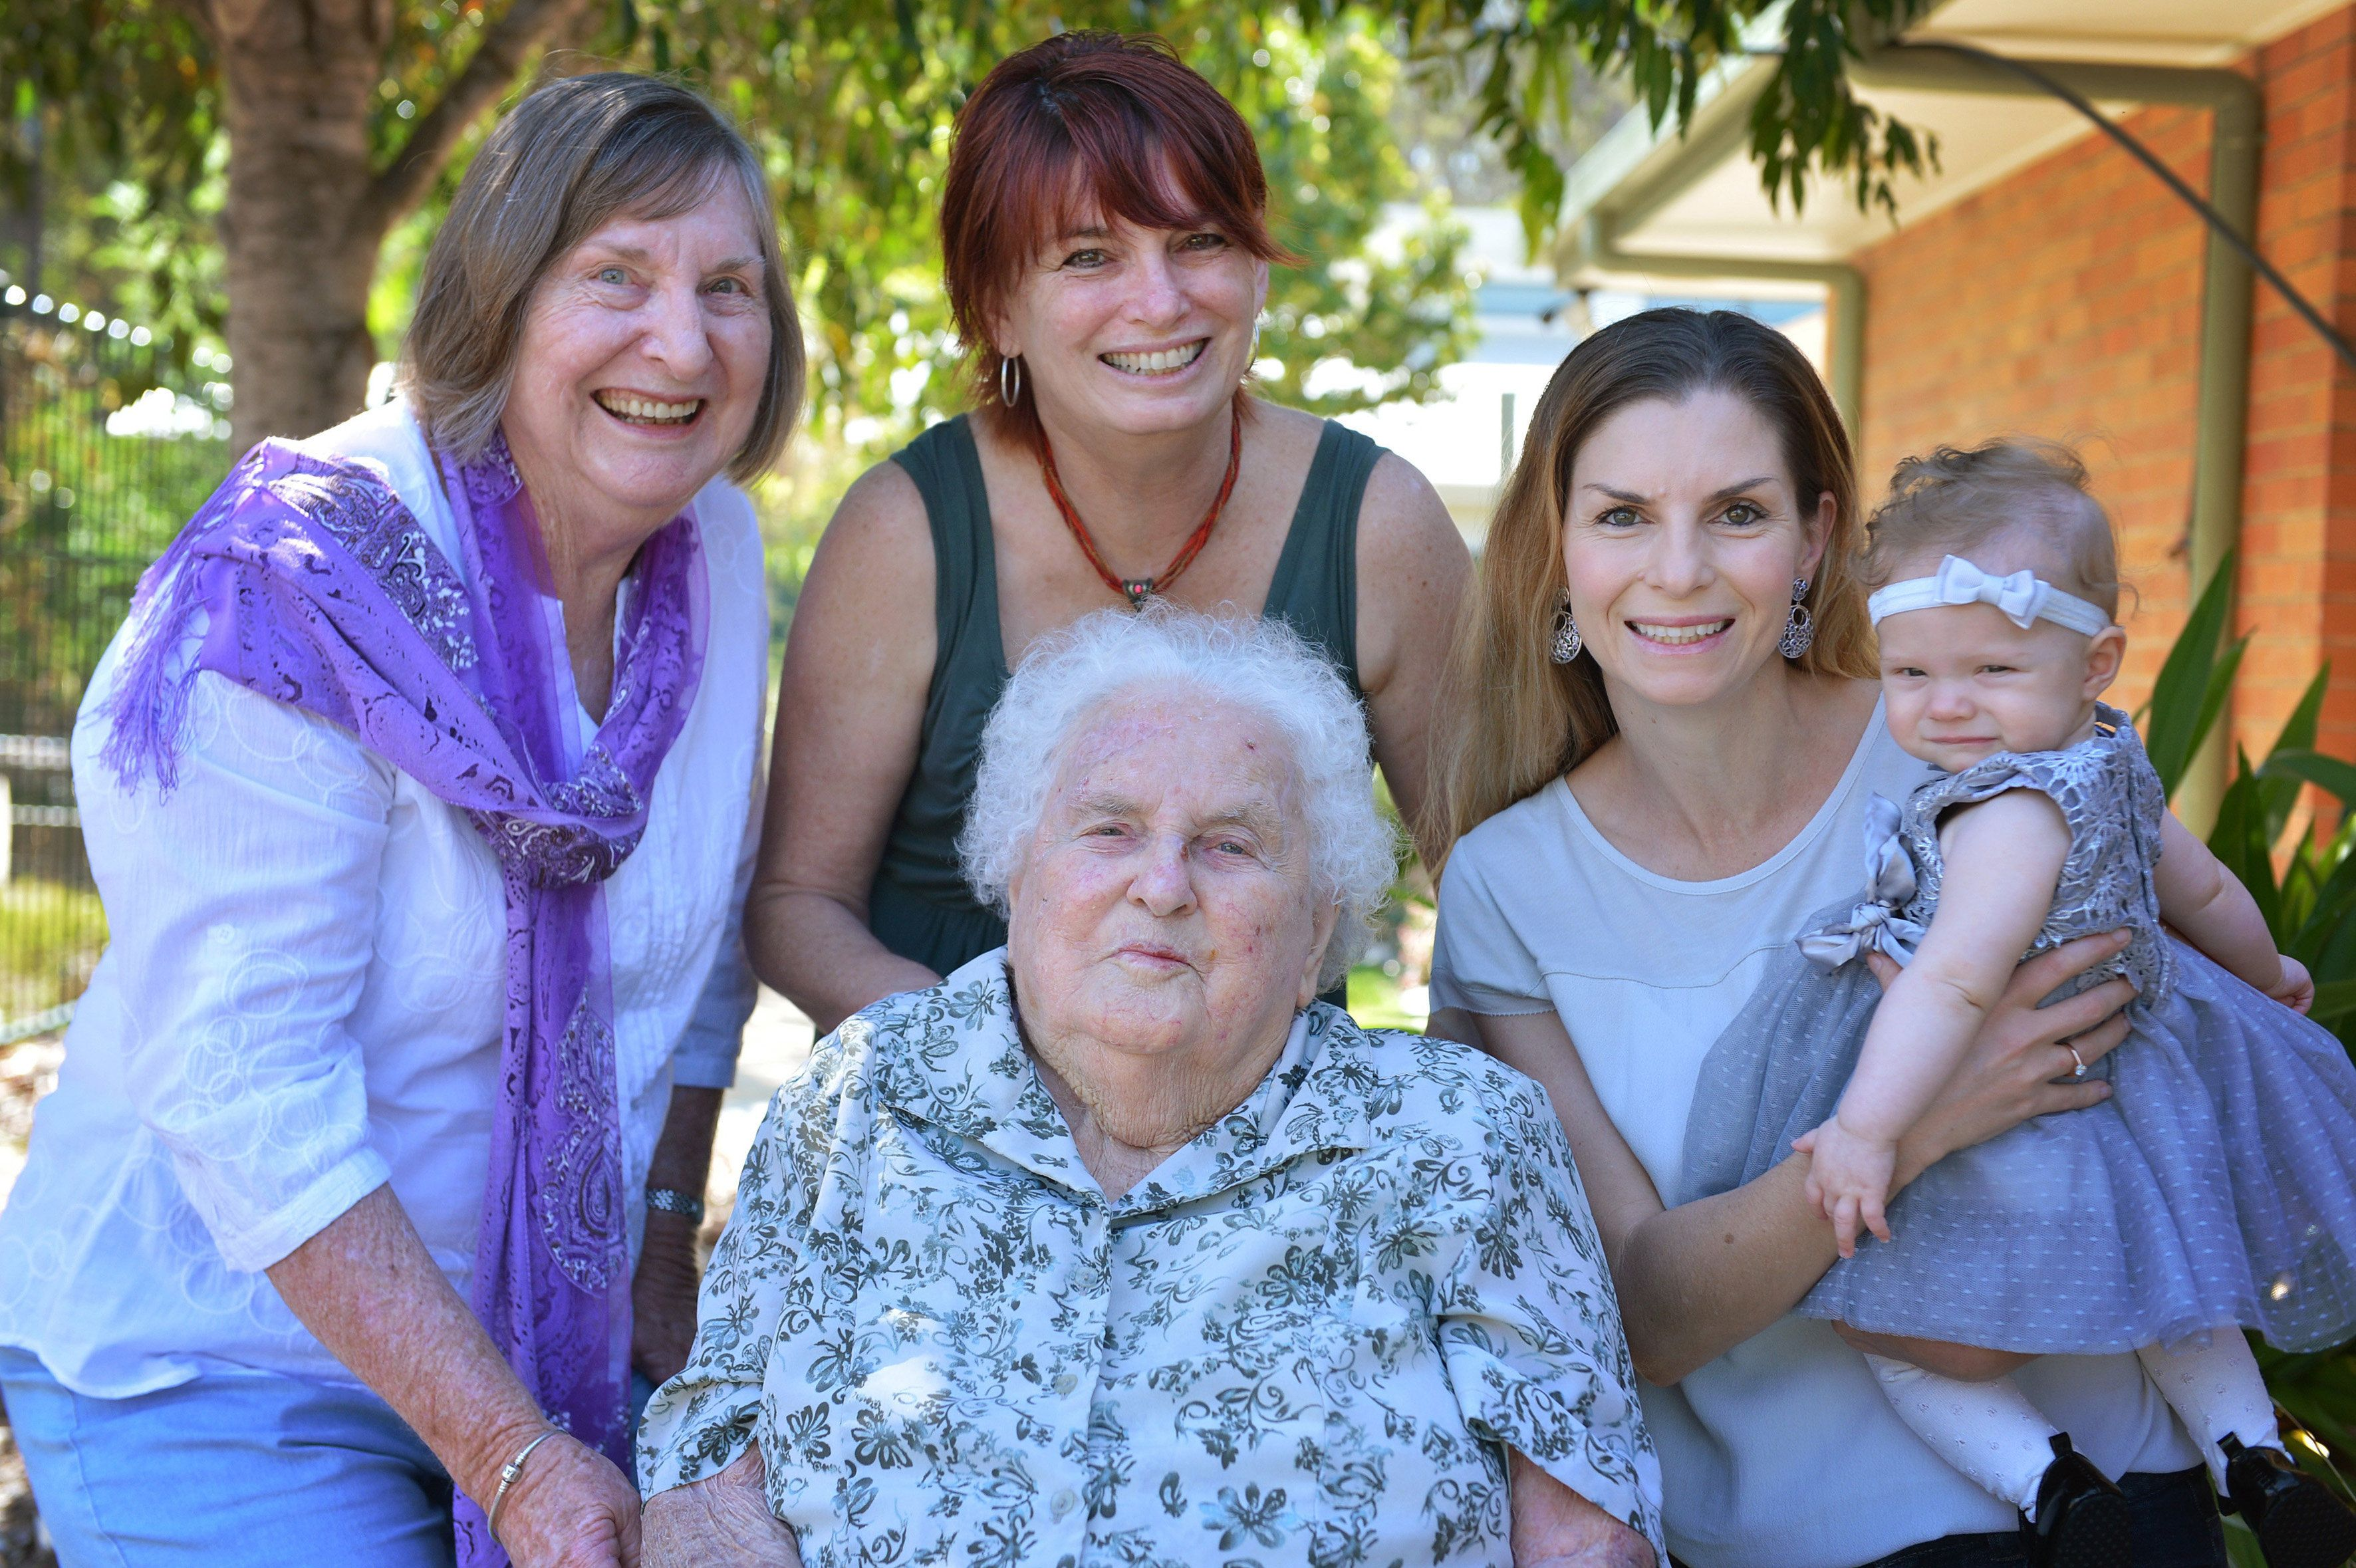 Momentous Photo Features 5 Generations Of Women From Same Family